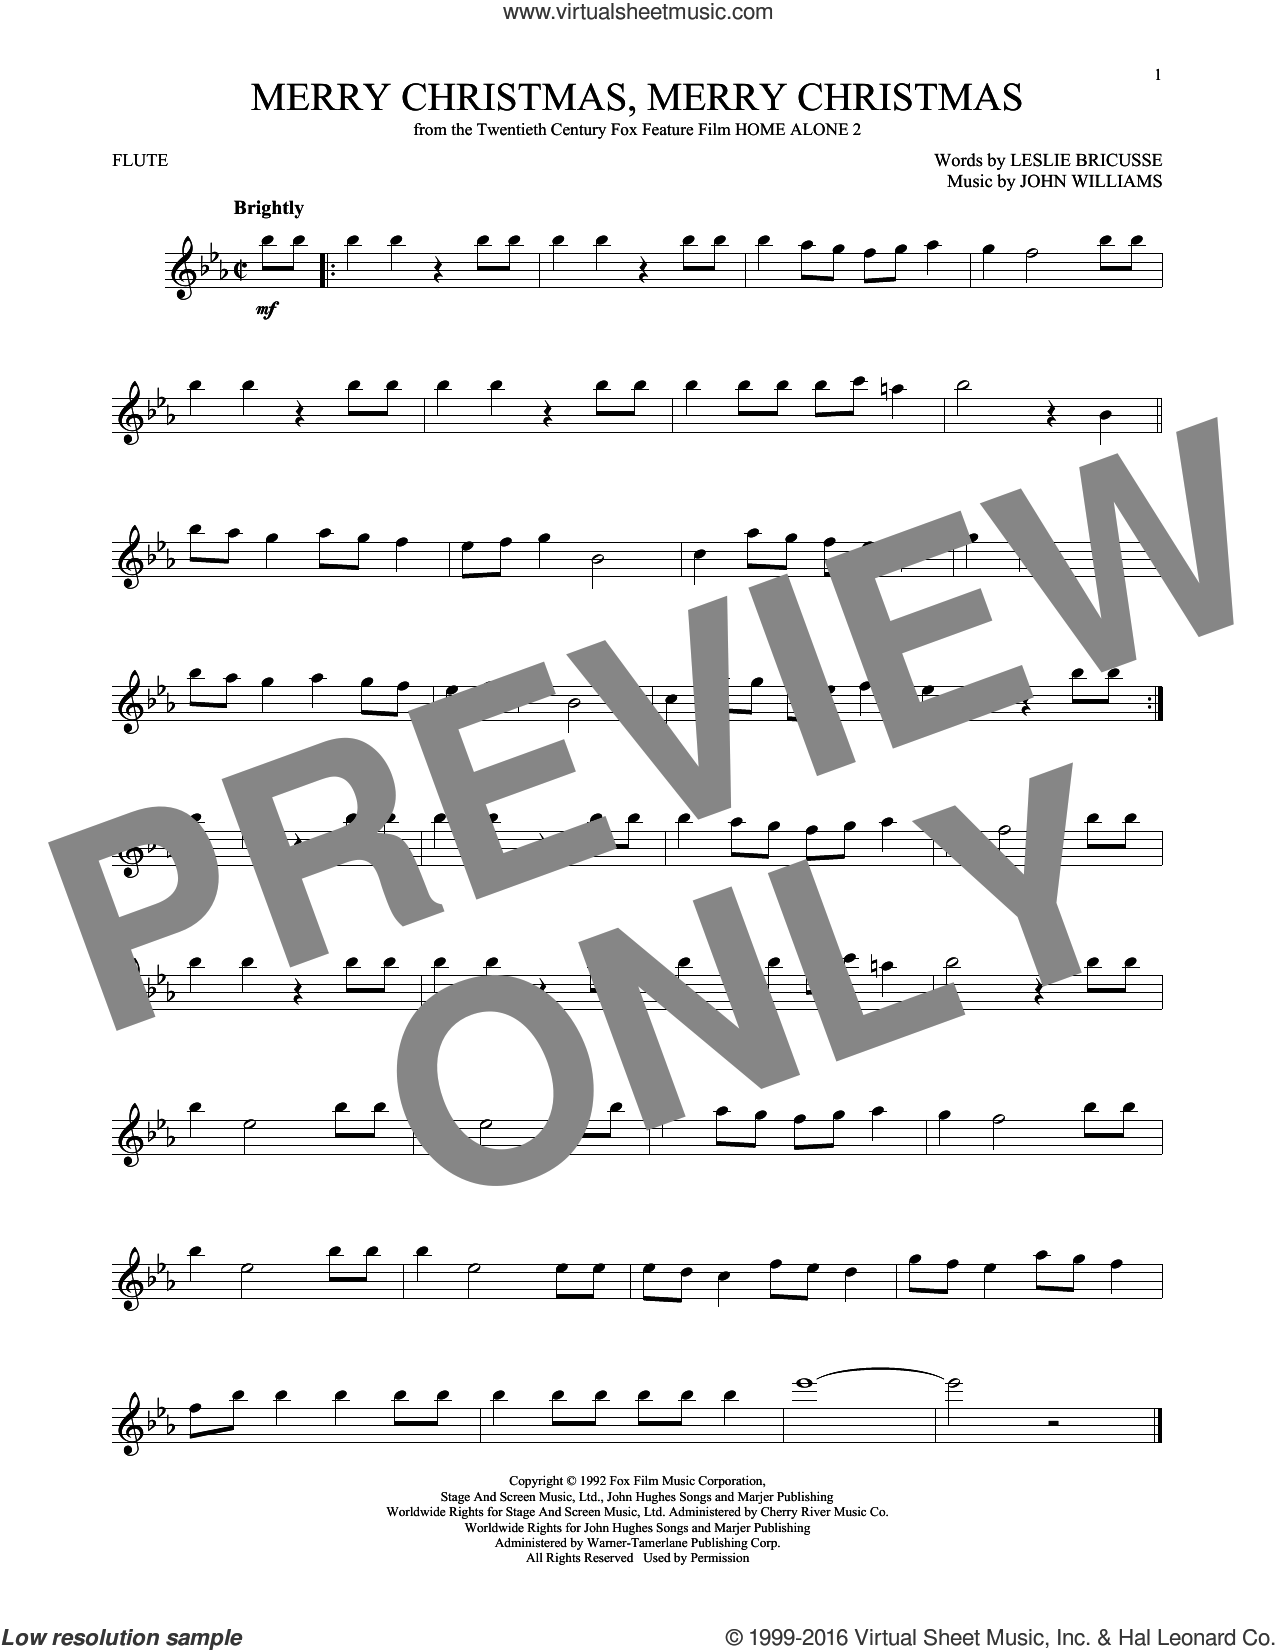 Merry Christmas, Merry Christmas sheet music for flute solo by John Williams and Leslie Bricusse, intermediate skill level